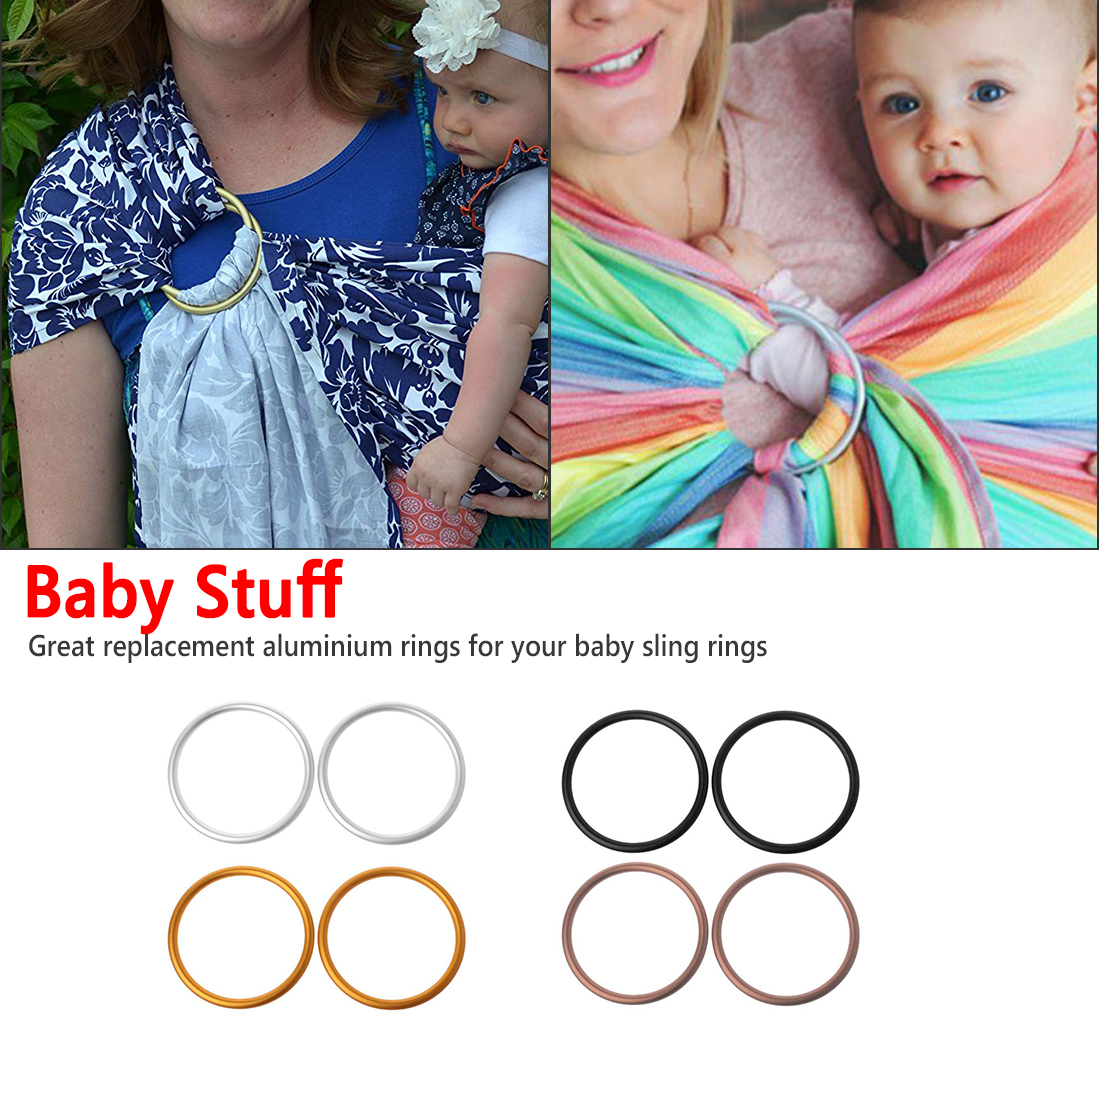 1pcs Baby Sling Rings Aluminum Adjustable Ring High Quality Baby Carrier Accessories New Arrival For Mommy Newborn Infant